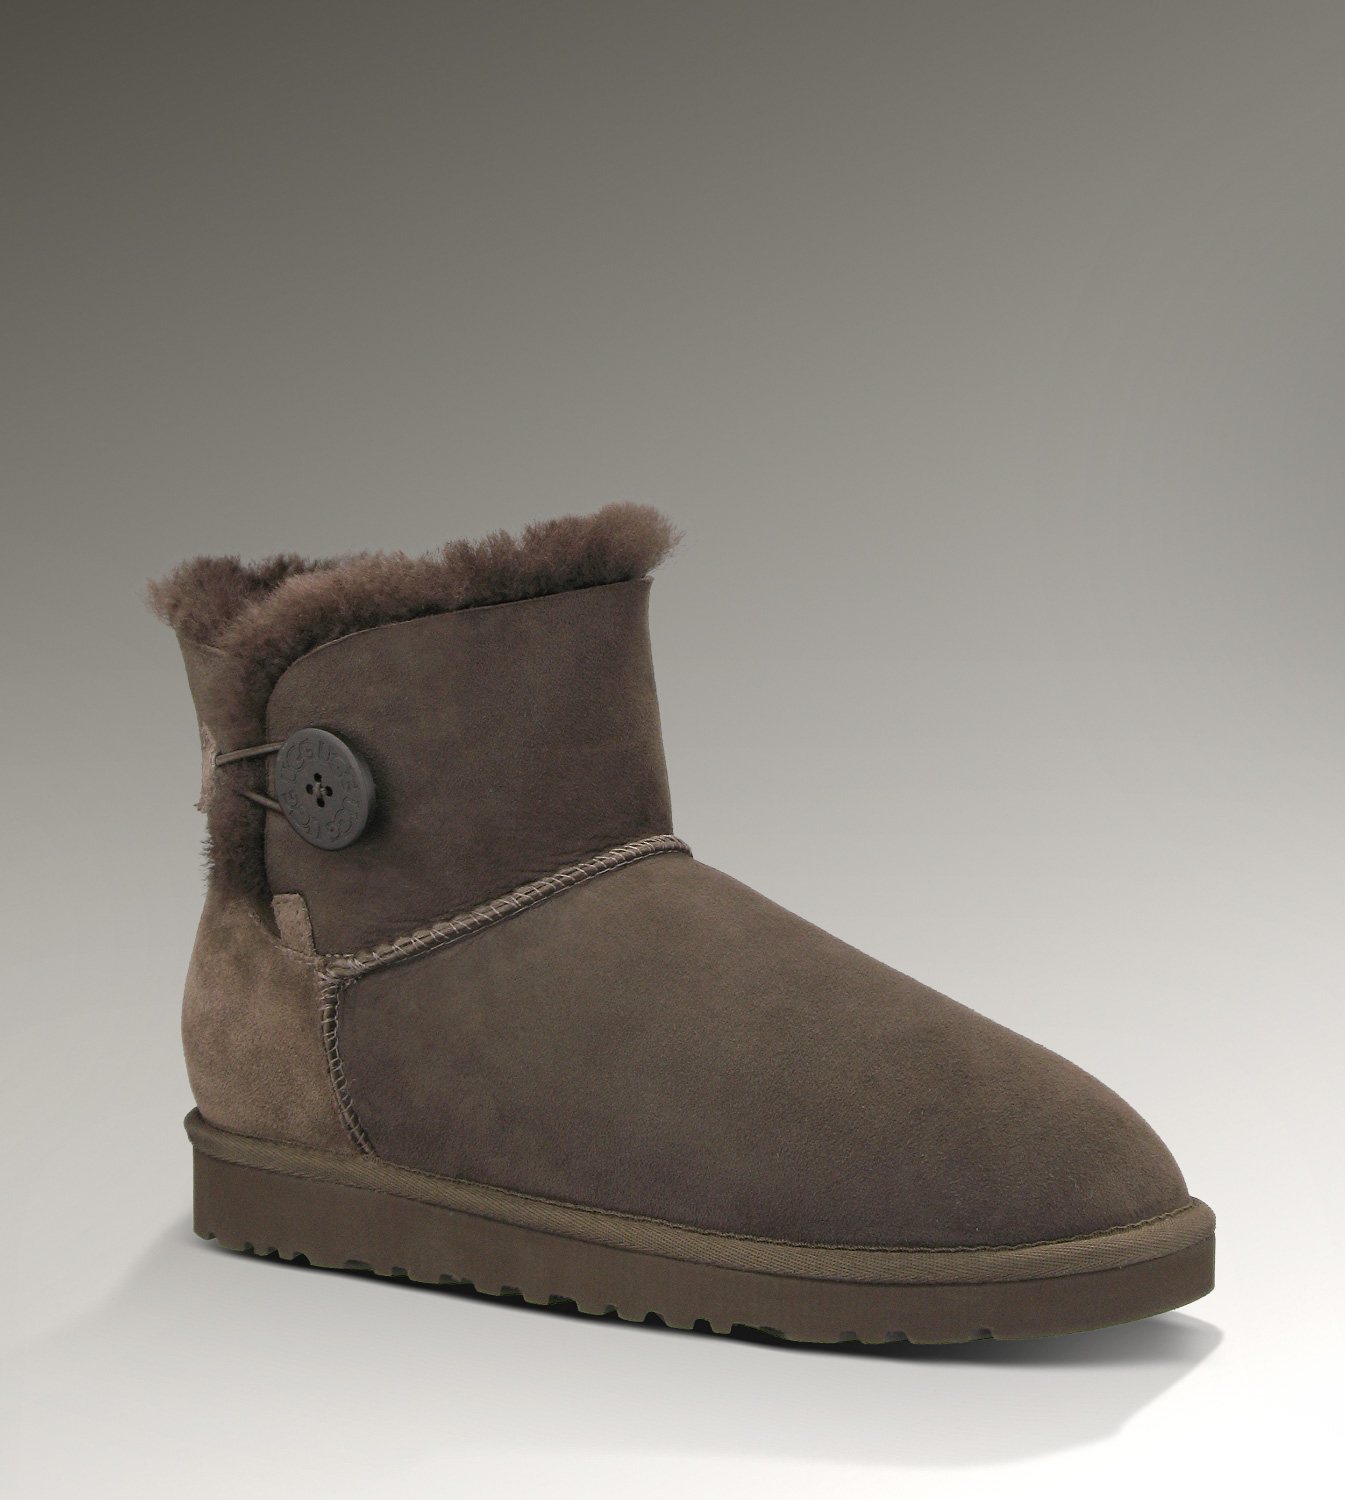 UGG Bailey Button Mini 3352 Chocolate Boots